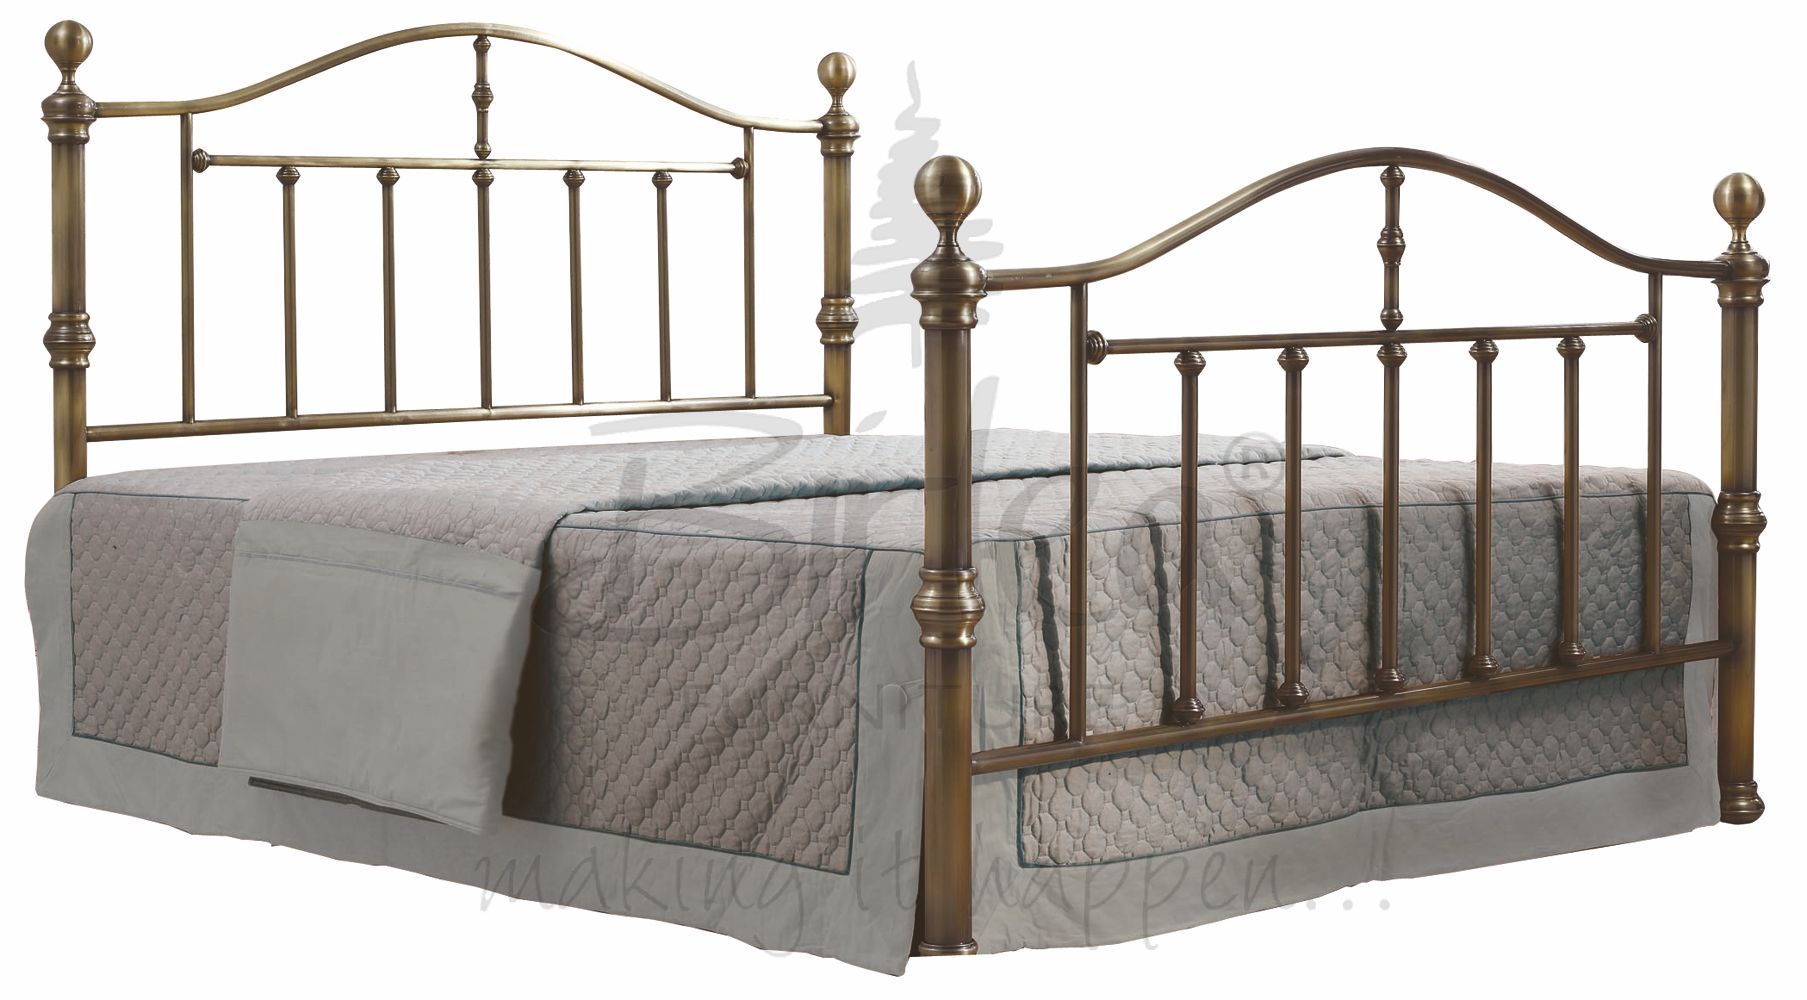 Birlea Victoria Nickel & Antik Messing Traditionell Metall Bett in ...